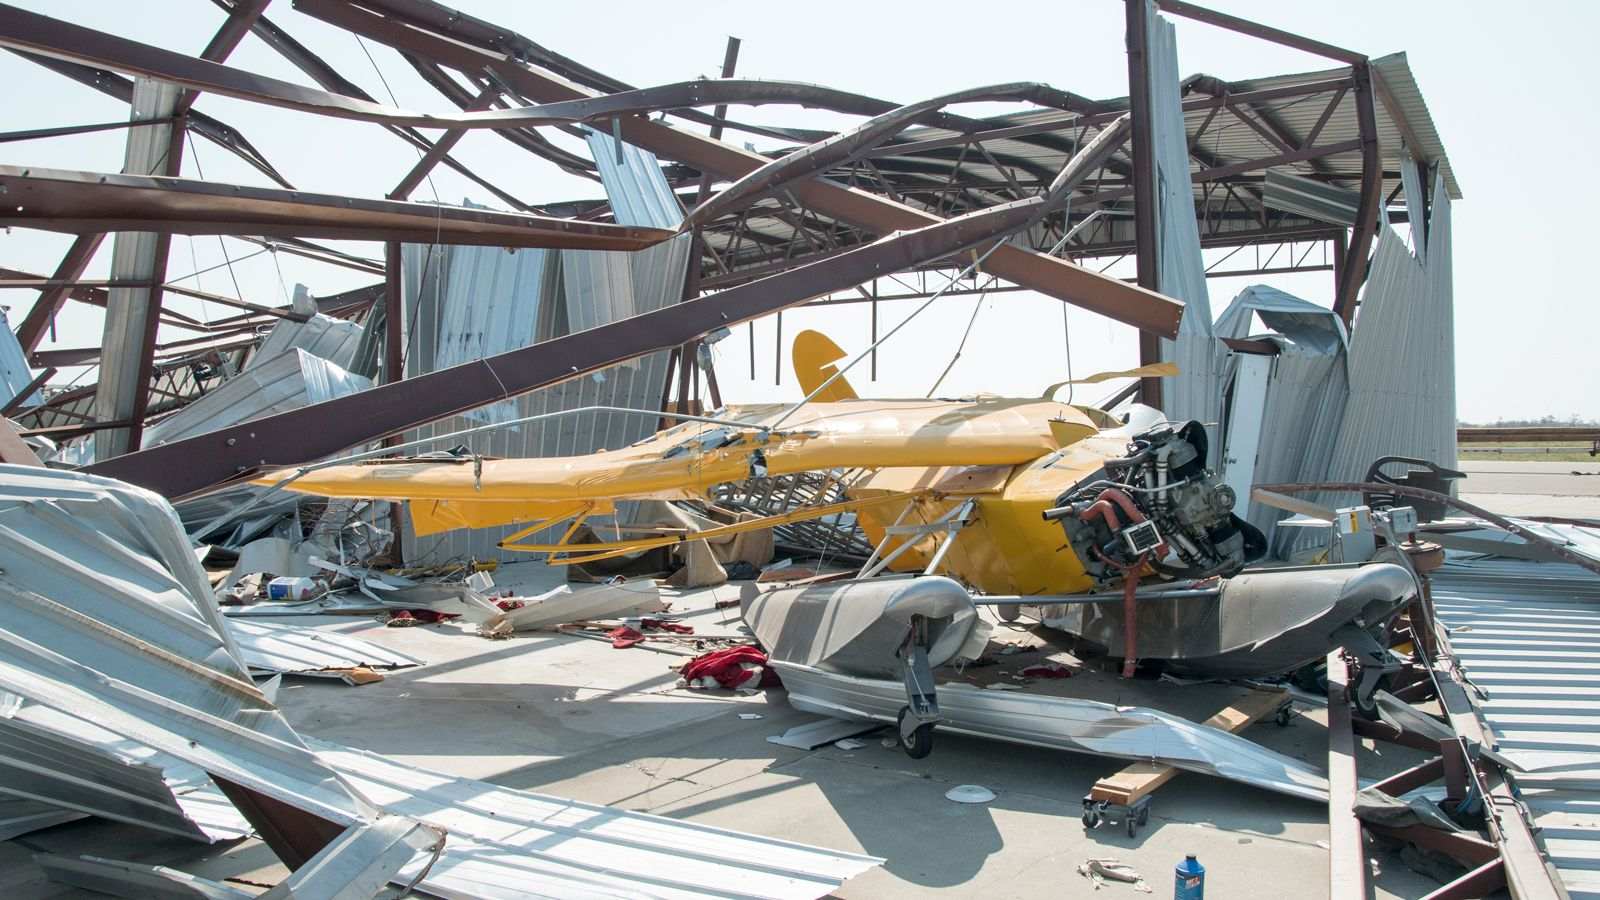 Airplane and hanger damage at Aransas County Airport, TX.